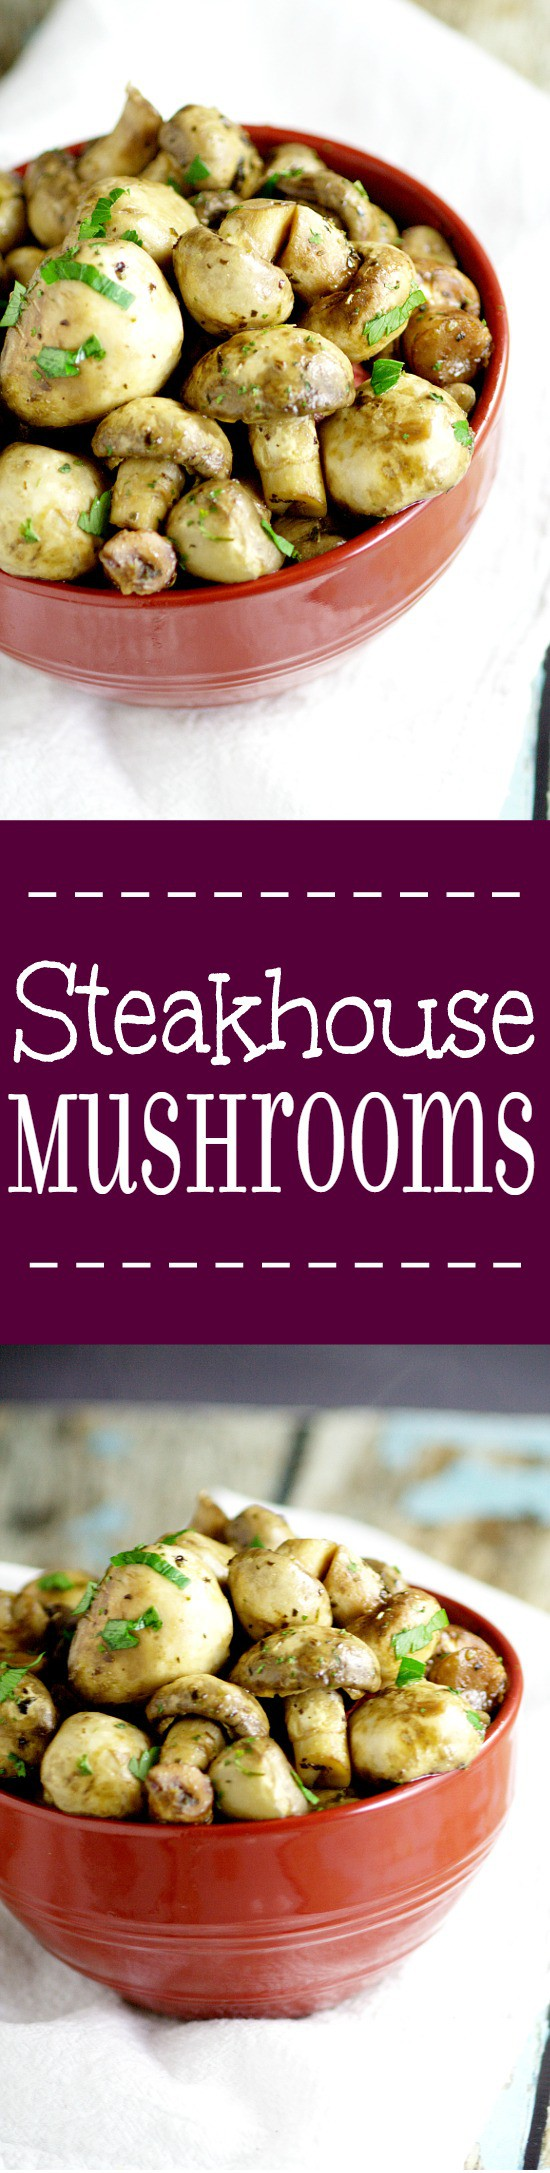 Buttery sauteed Steakhouse Mushrooms with herbs will complement your lovely steak dinner perfectly! Plus, make it in just 15 minutes!